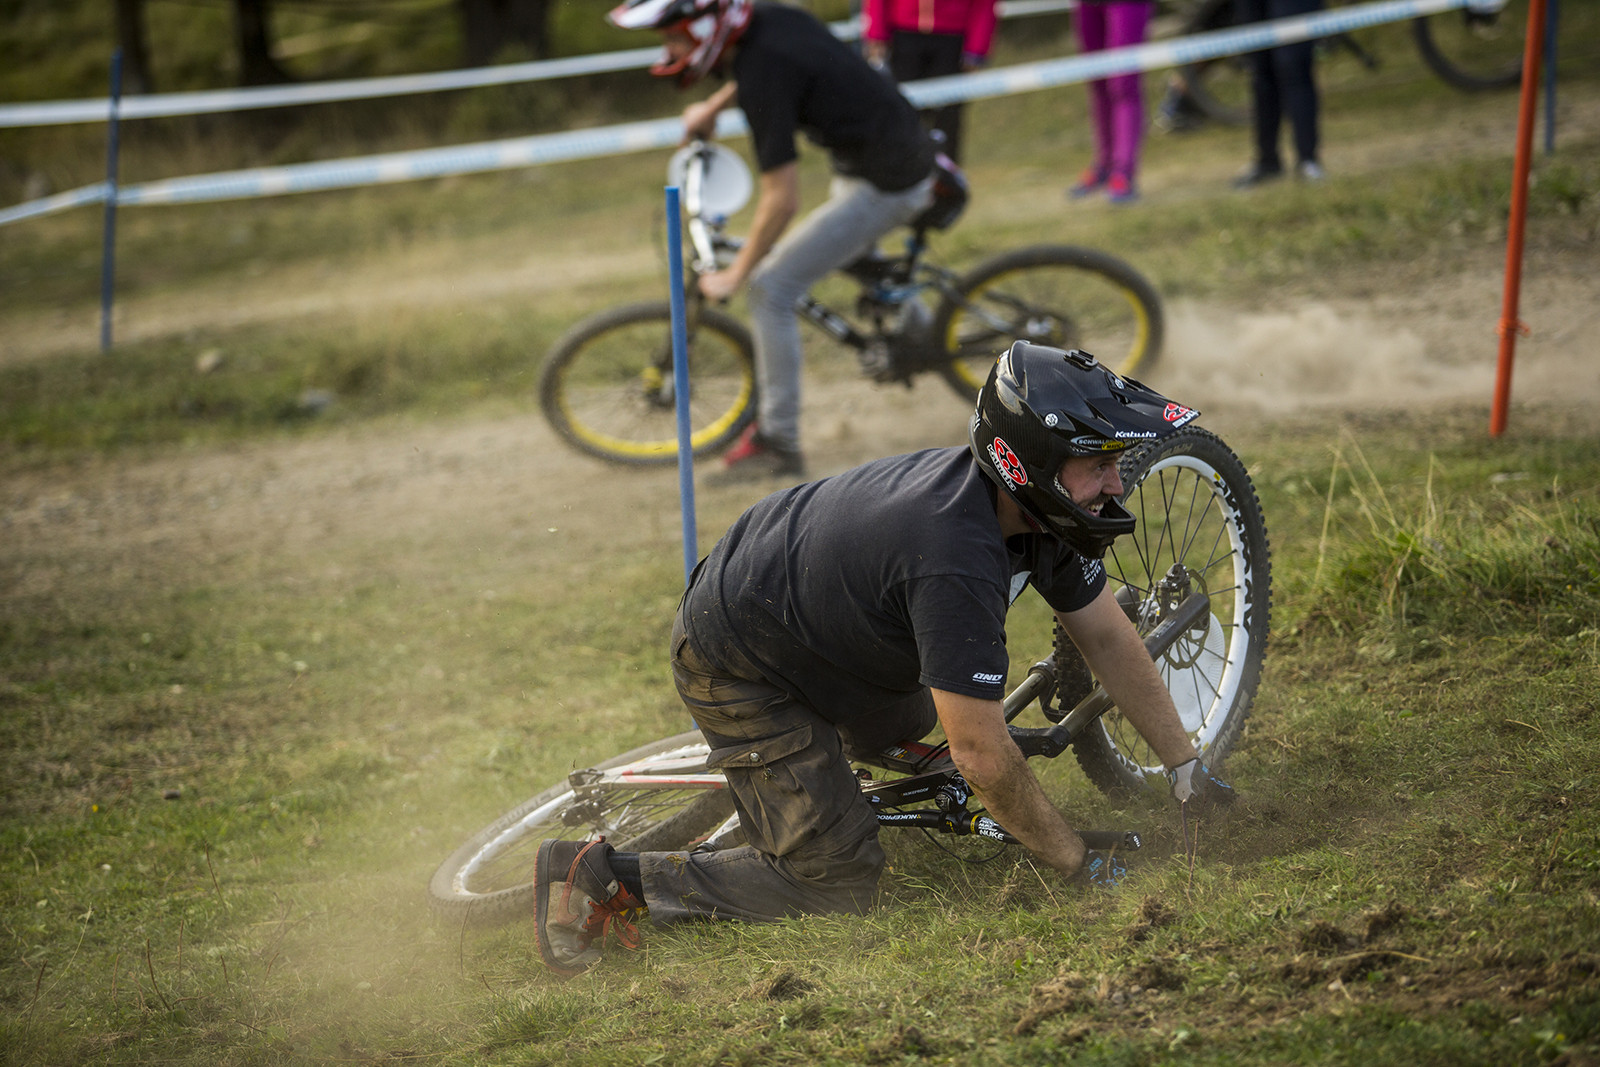 Seabass Down, But Still Stoked - Has-Beens vs. Wannabes! Industry World Champs Race at Hafjell - Mountain Biking Pictures - Vital MTB